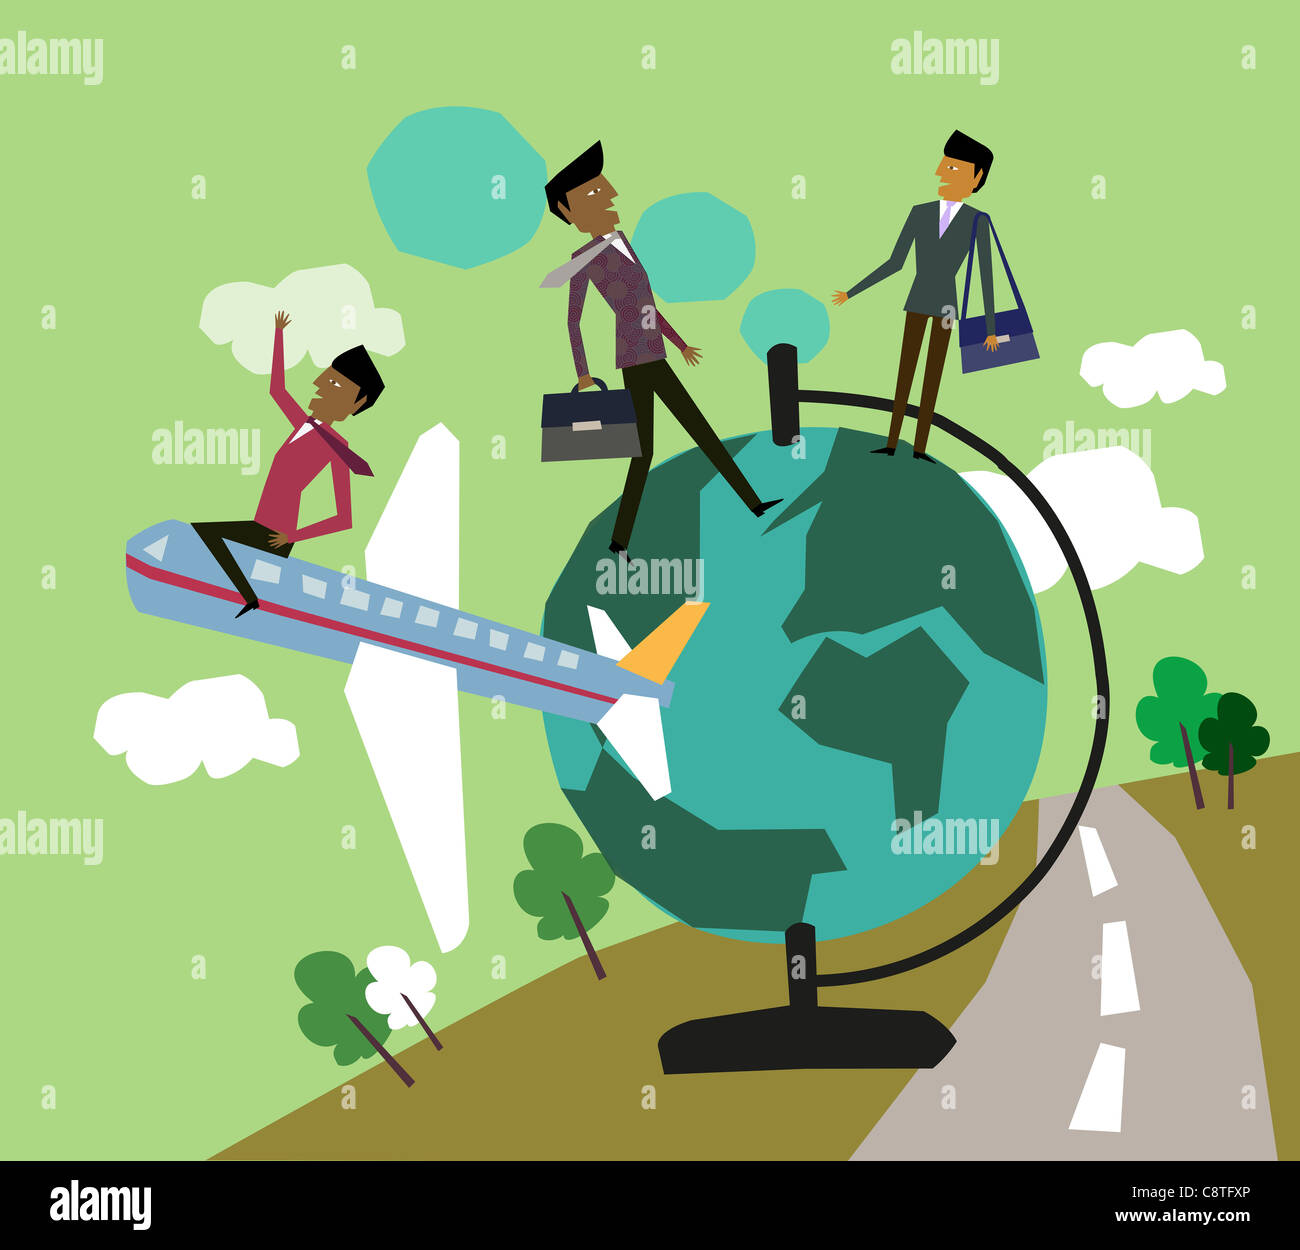 Businessmen On Globe And Sitting On Airplane - Stock Image